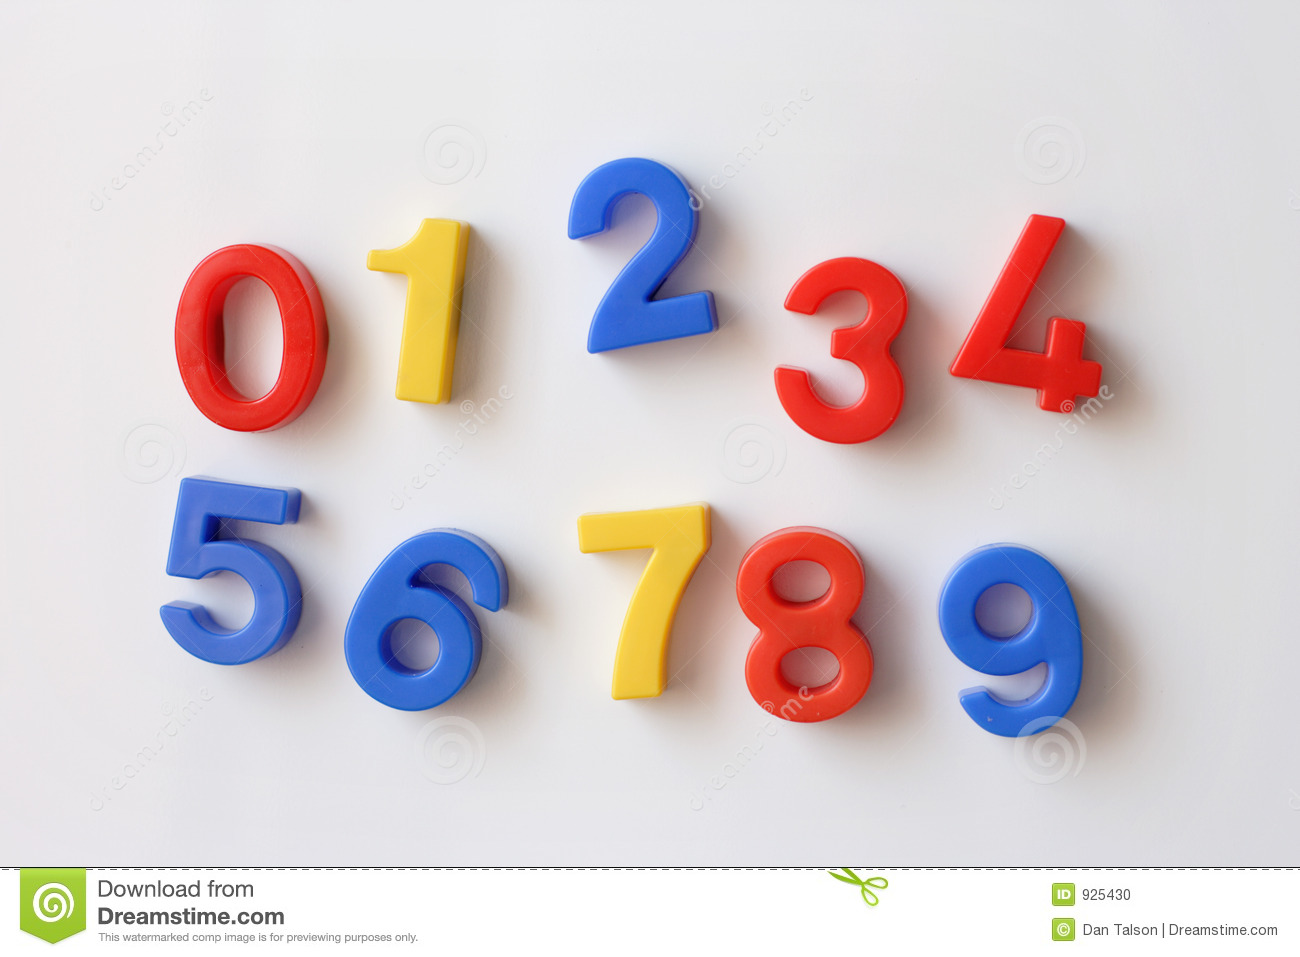 Number fridge magnets displaying numbers 0 - 9, messy.